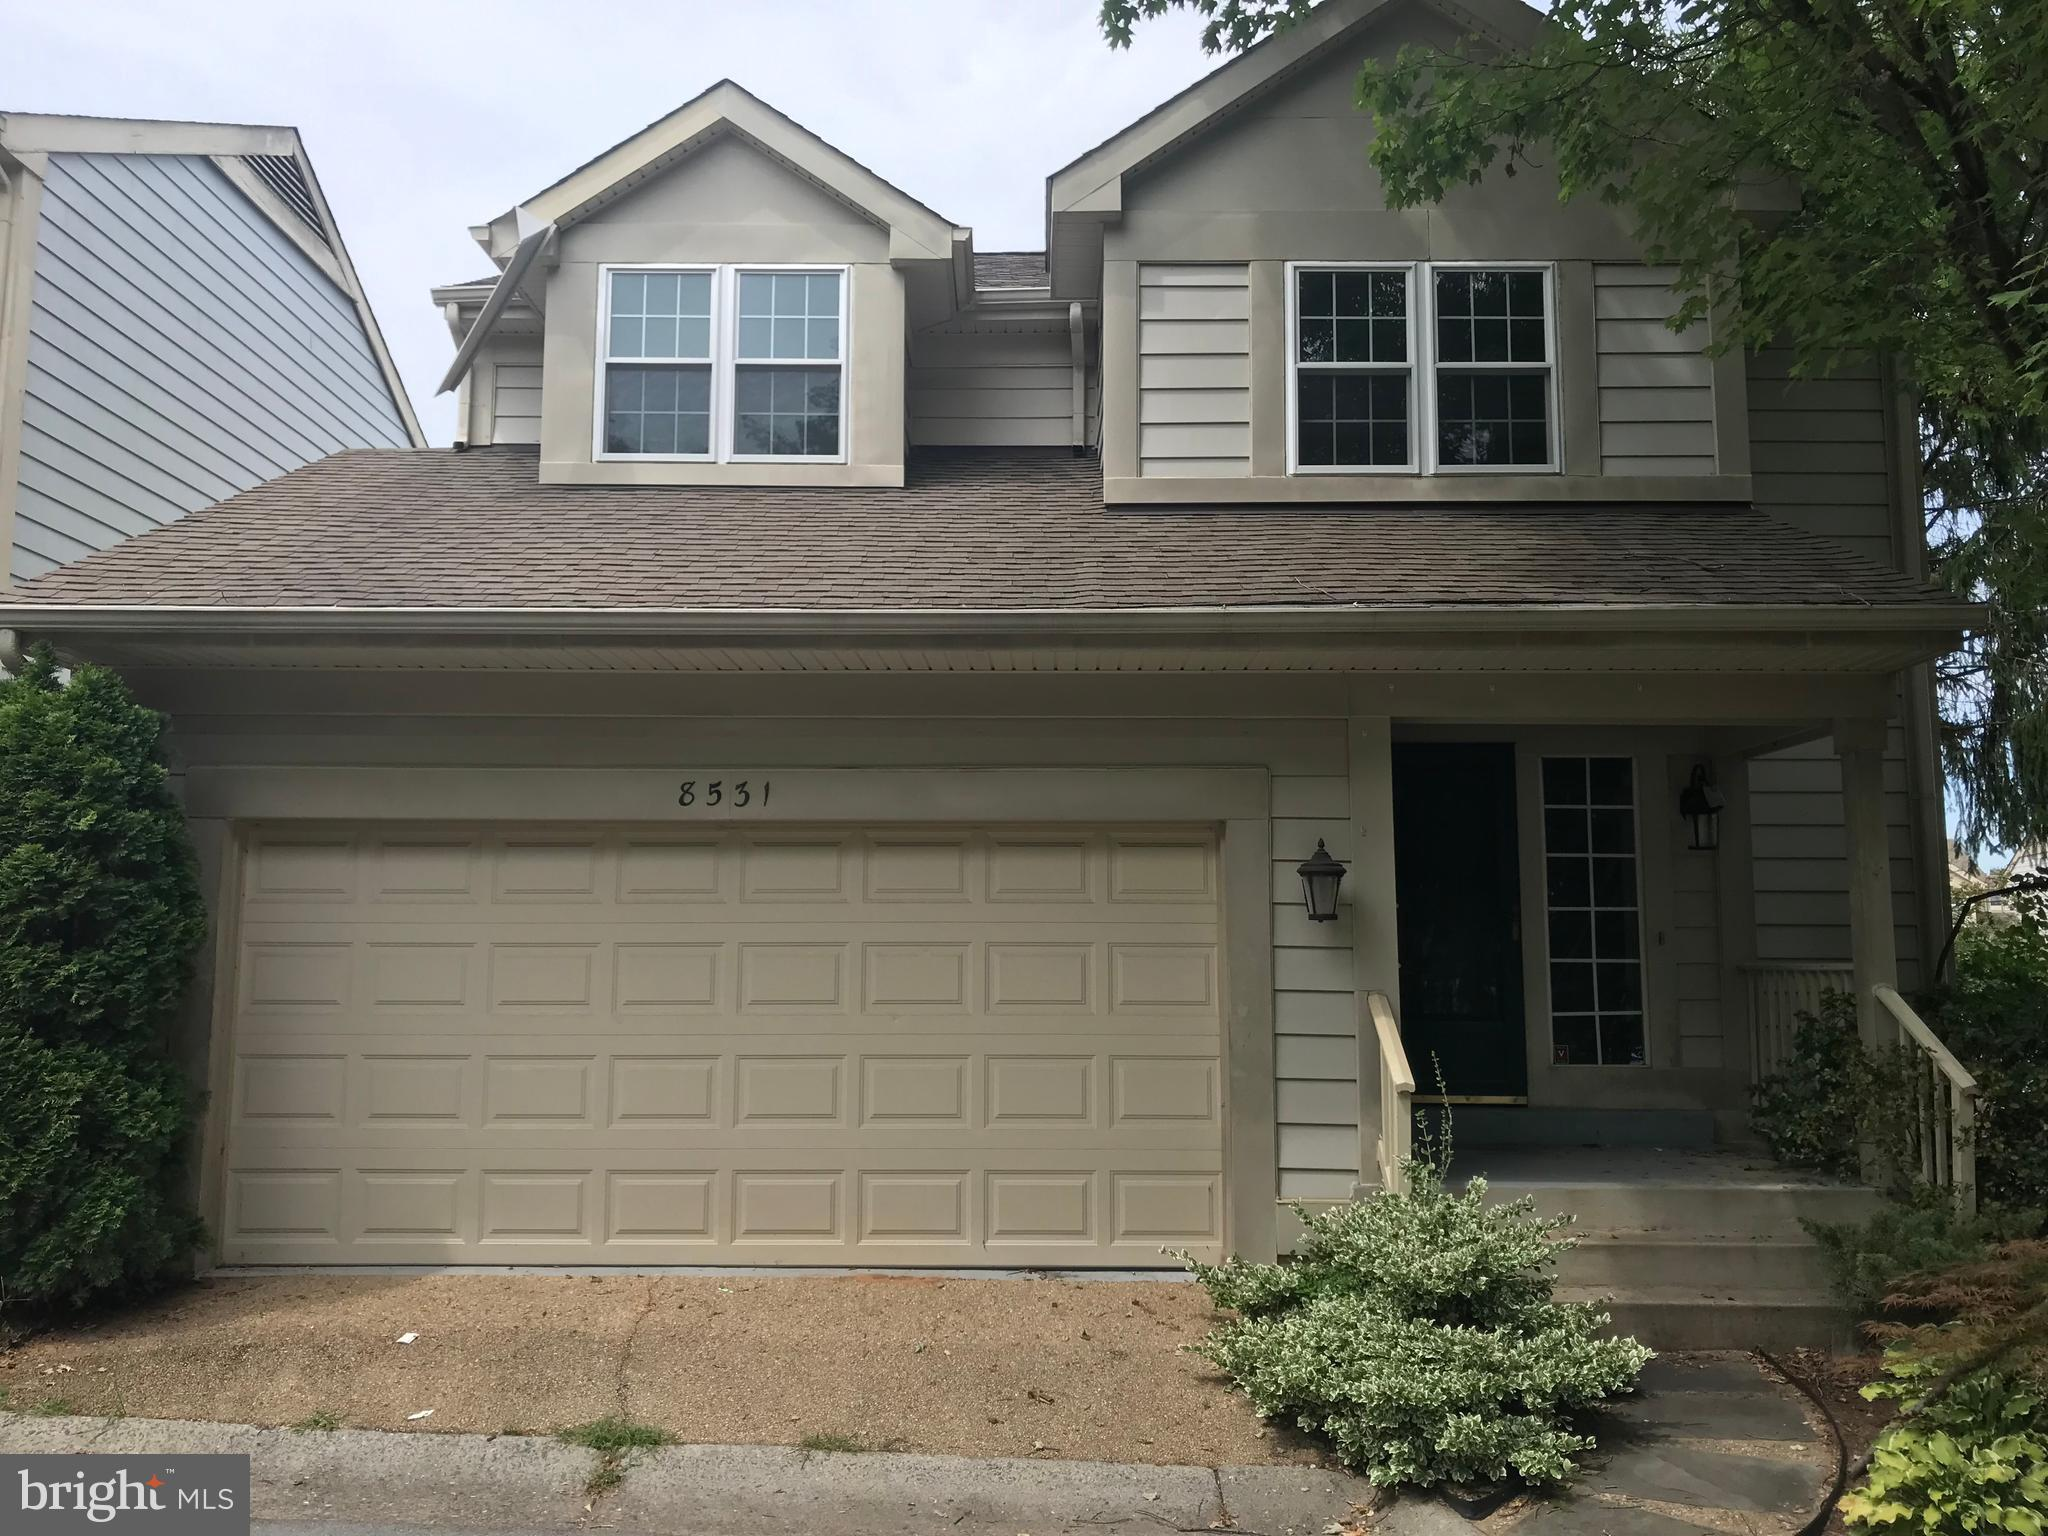 8531 TINDAL SPRINGS DRIVE, MONTGOMERY VILLAGE, MD 20886